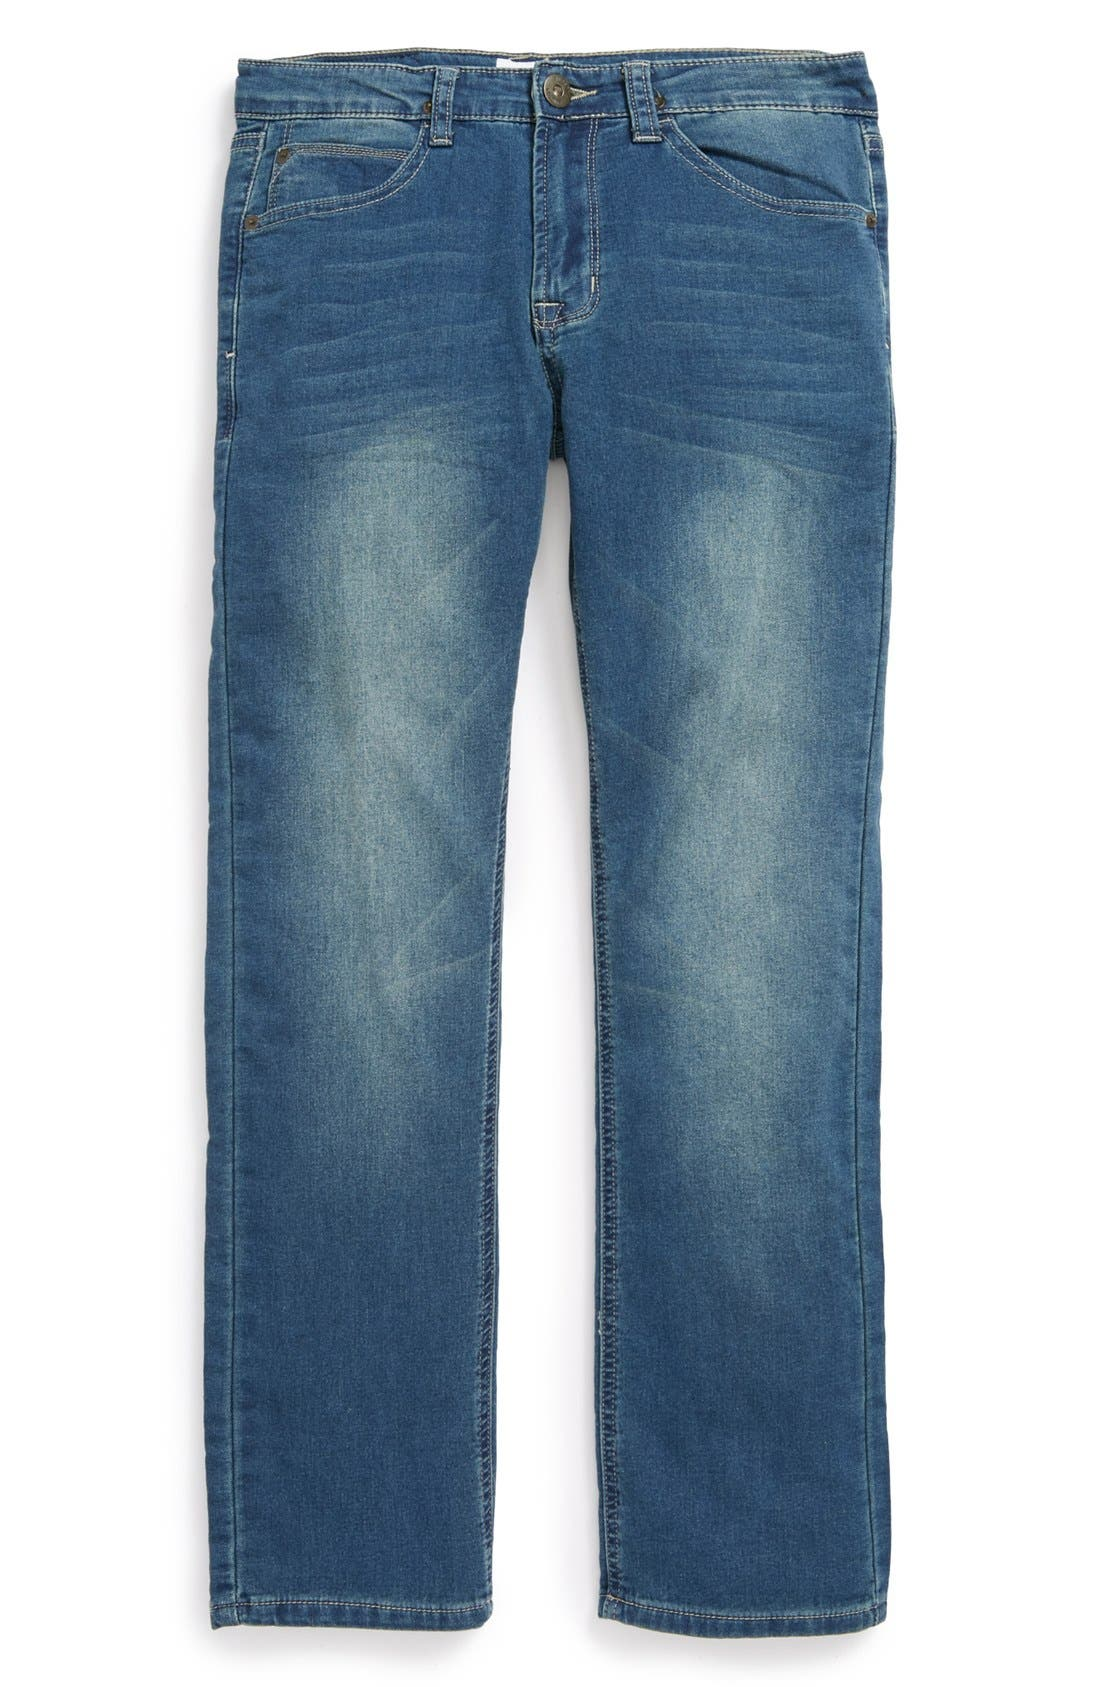 Alternate Image 2  - Hudson Kids 'Parker' Straight Leg Jeans (Little Boys)